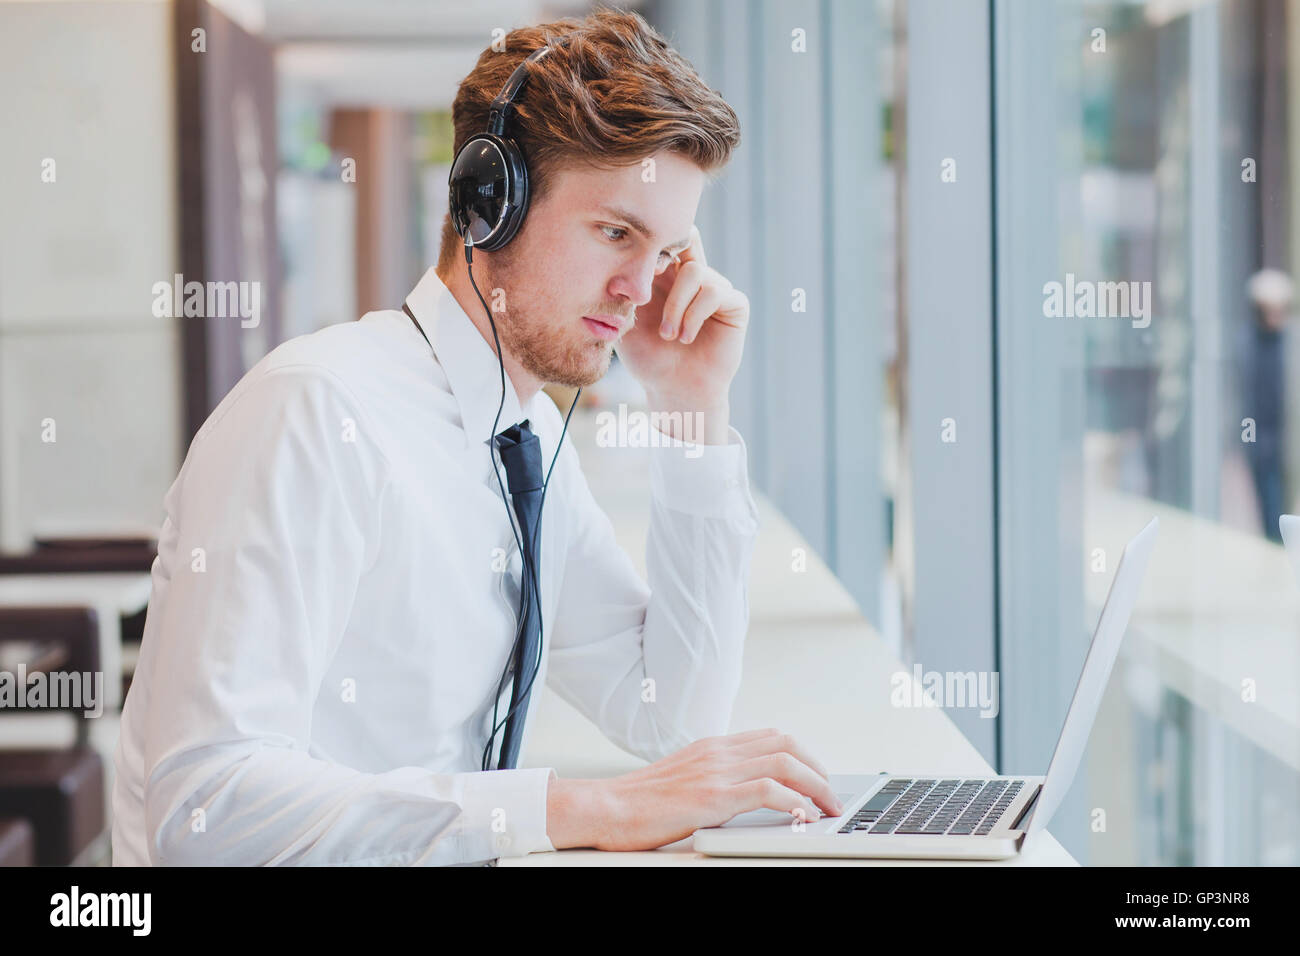 businessman in headphones working with laptop in modern cafe interior - Stock Image